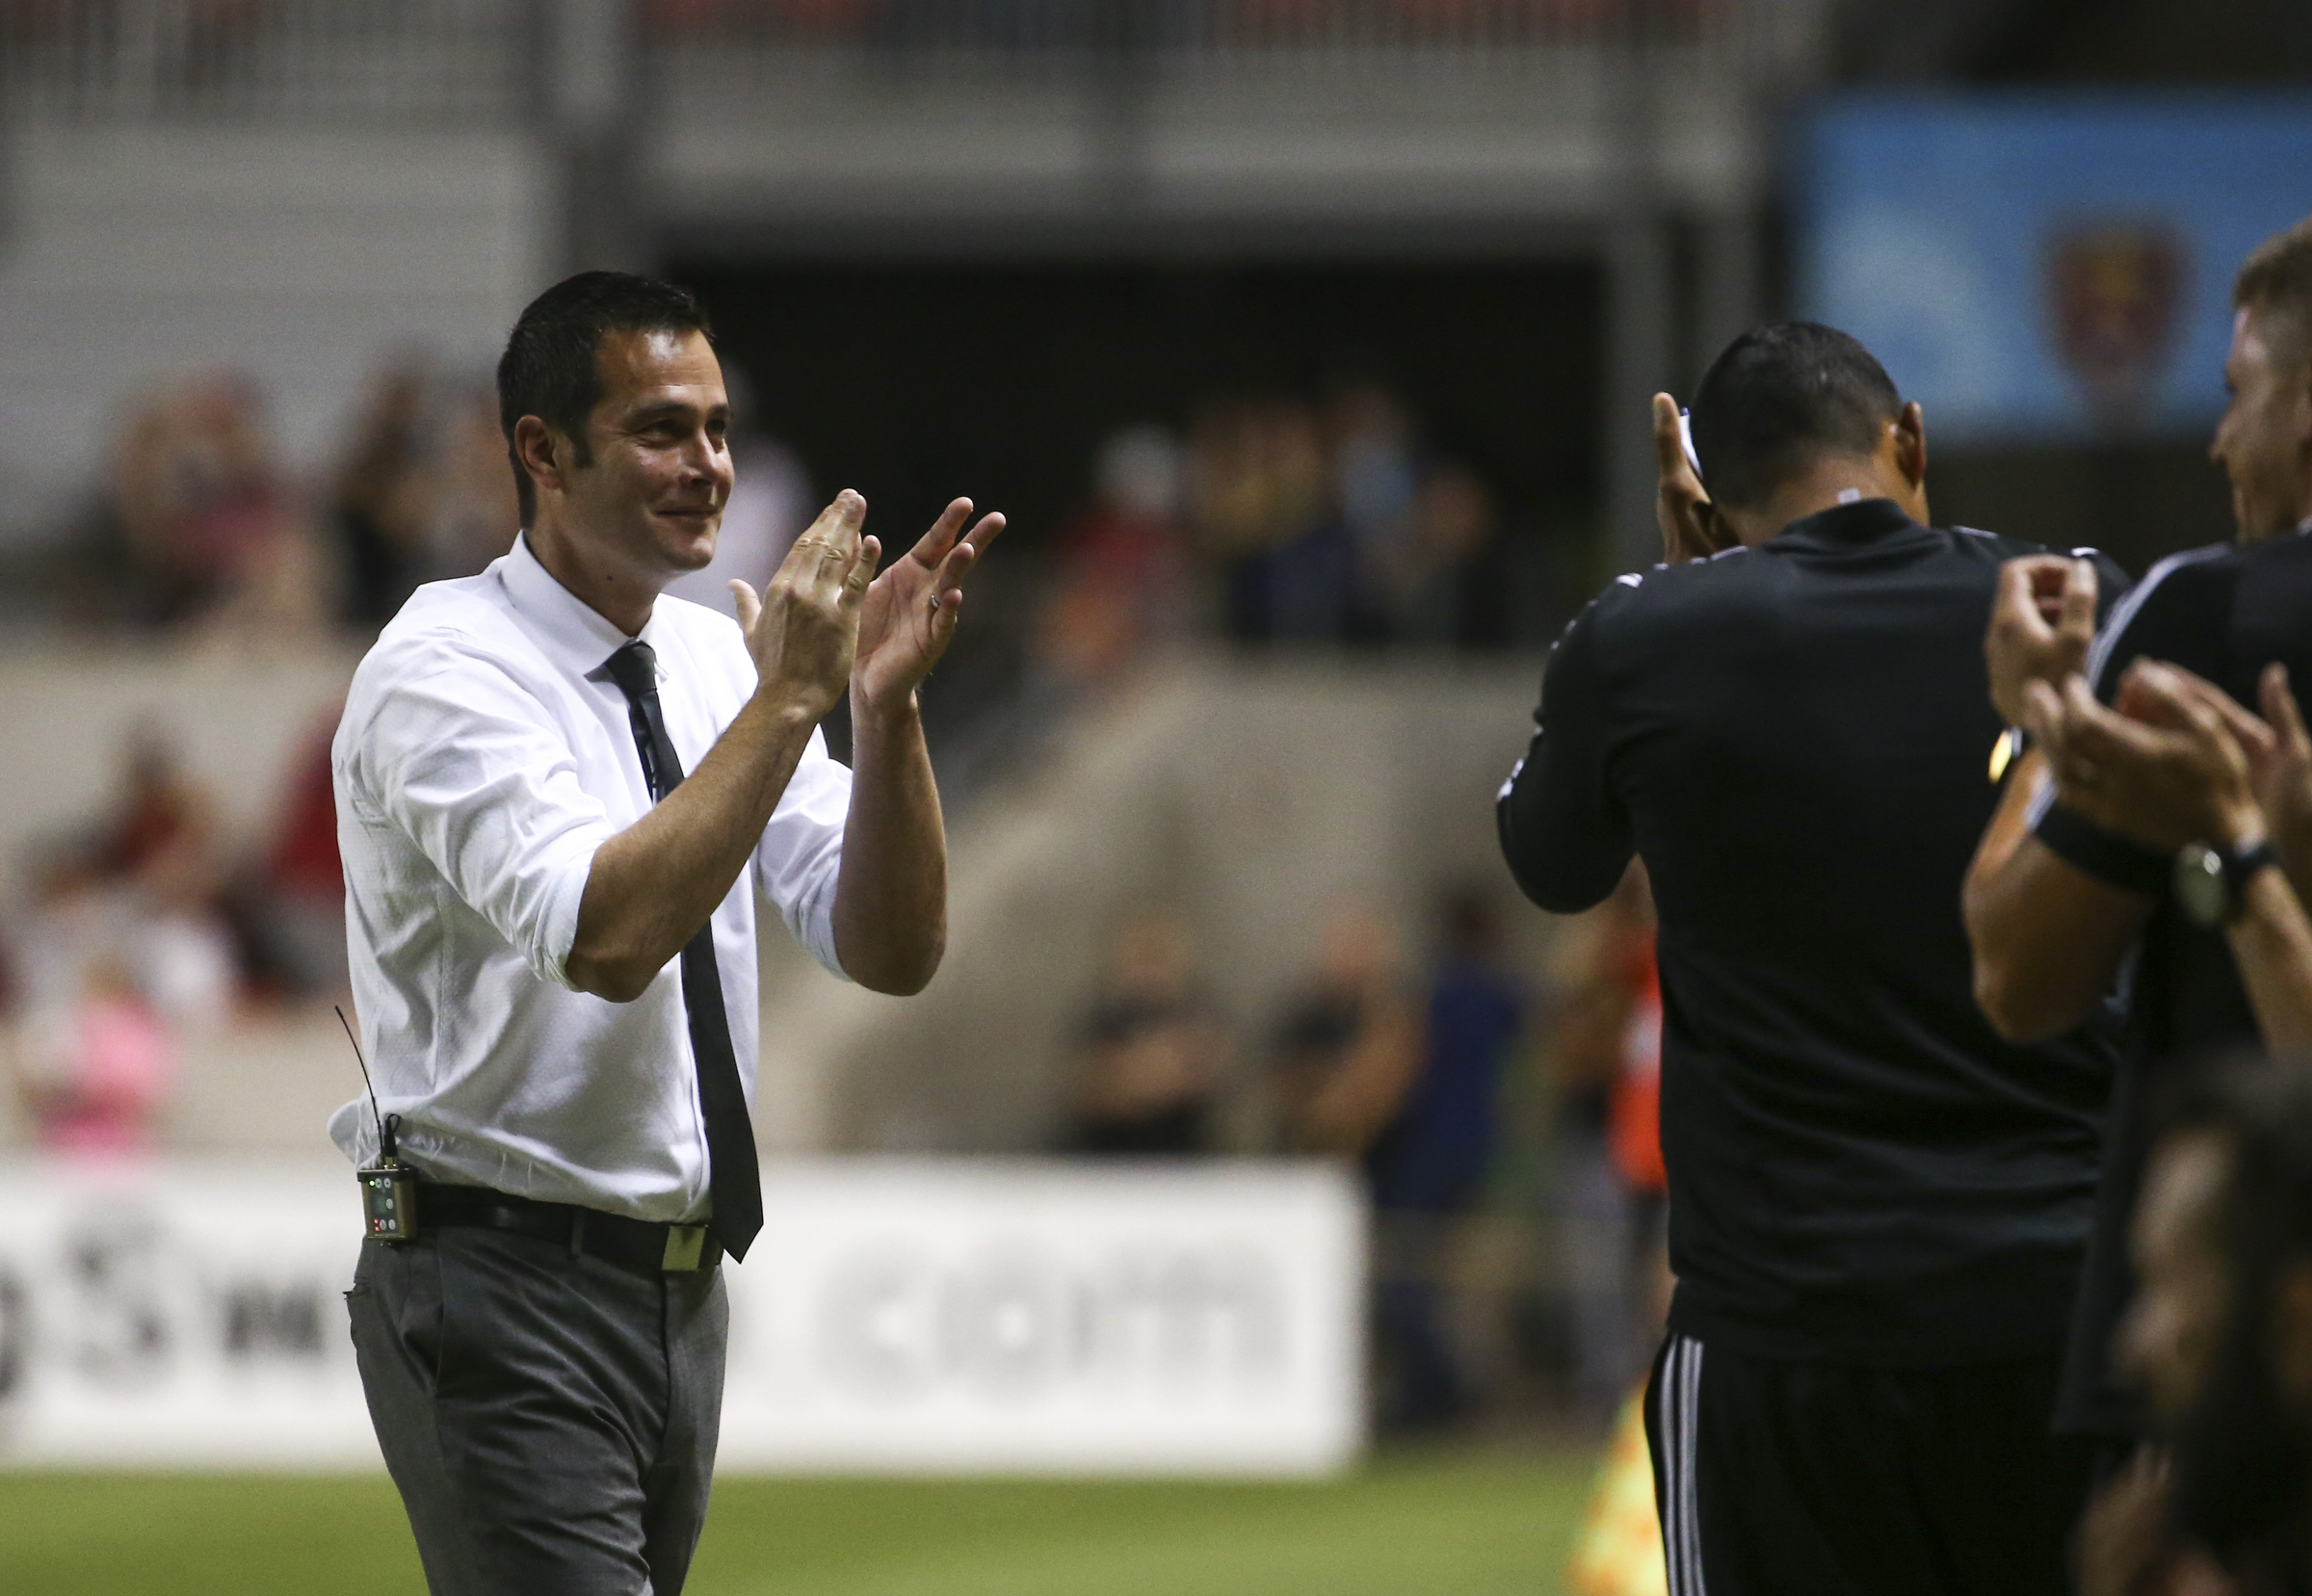 Real Salt Lake head coach Mike Petke celebrates the fourth goal of the night during the second half of a game at Rio Tinto Stadium in Sandy on Saturday, July 13, 2019.